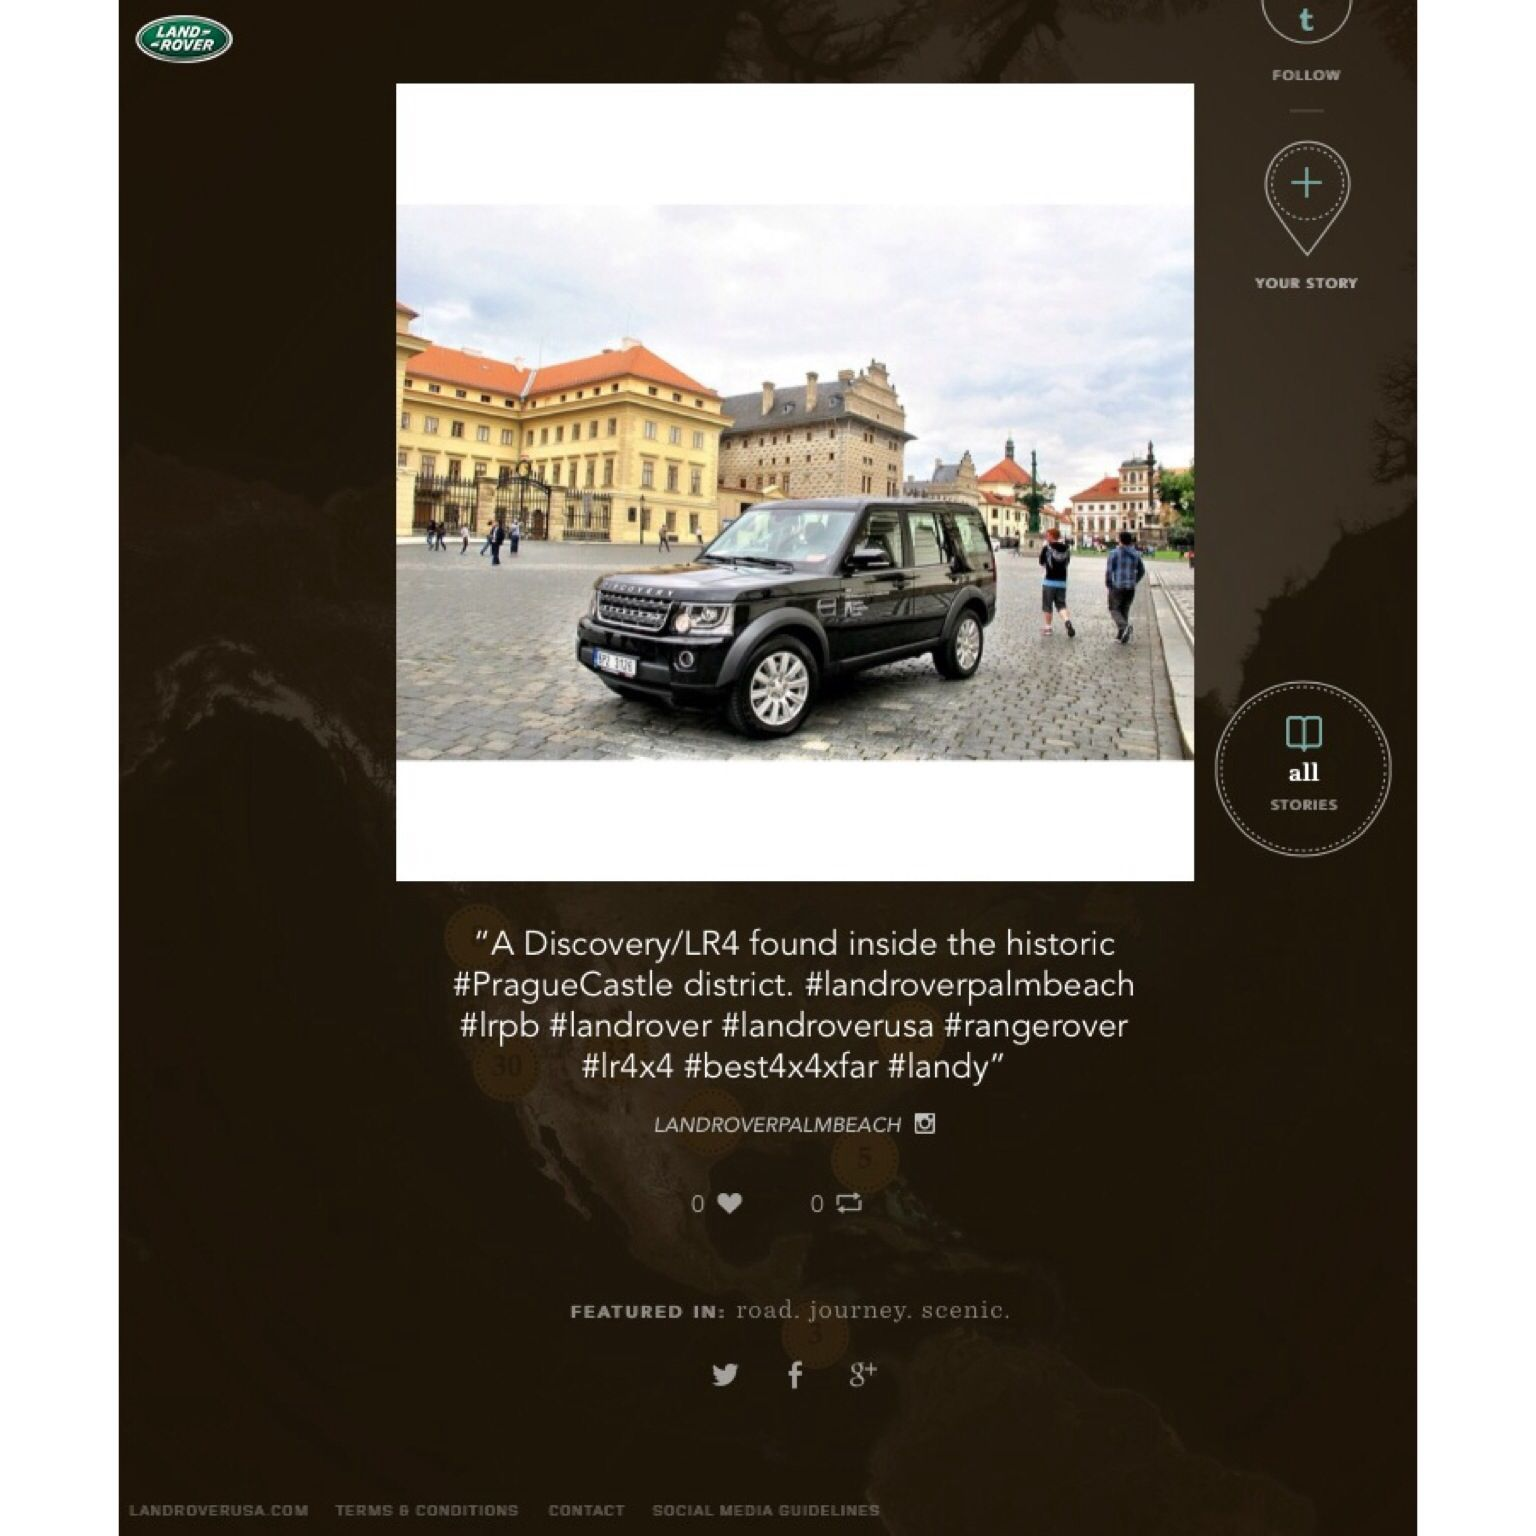 Land Rover Palm Beach post gets featured on Land Rover's